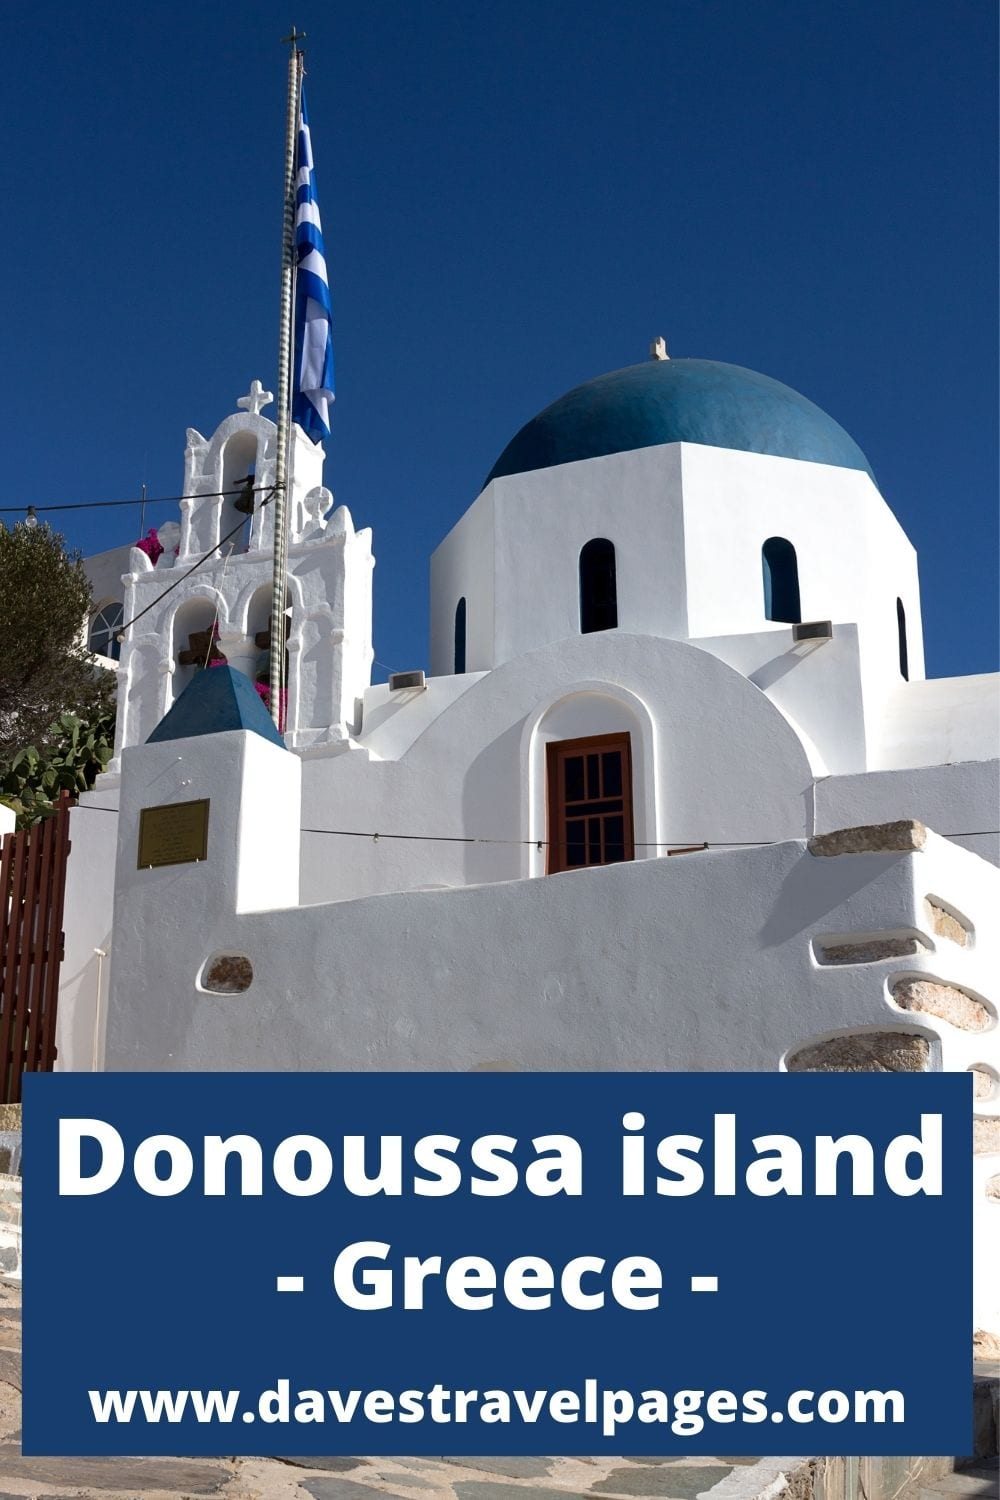 The best way to get from Santorini to Donoussa in Greece